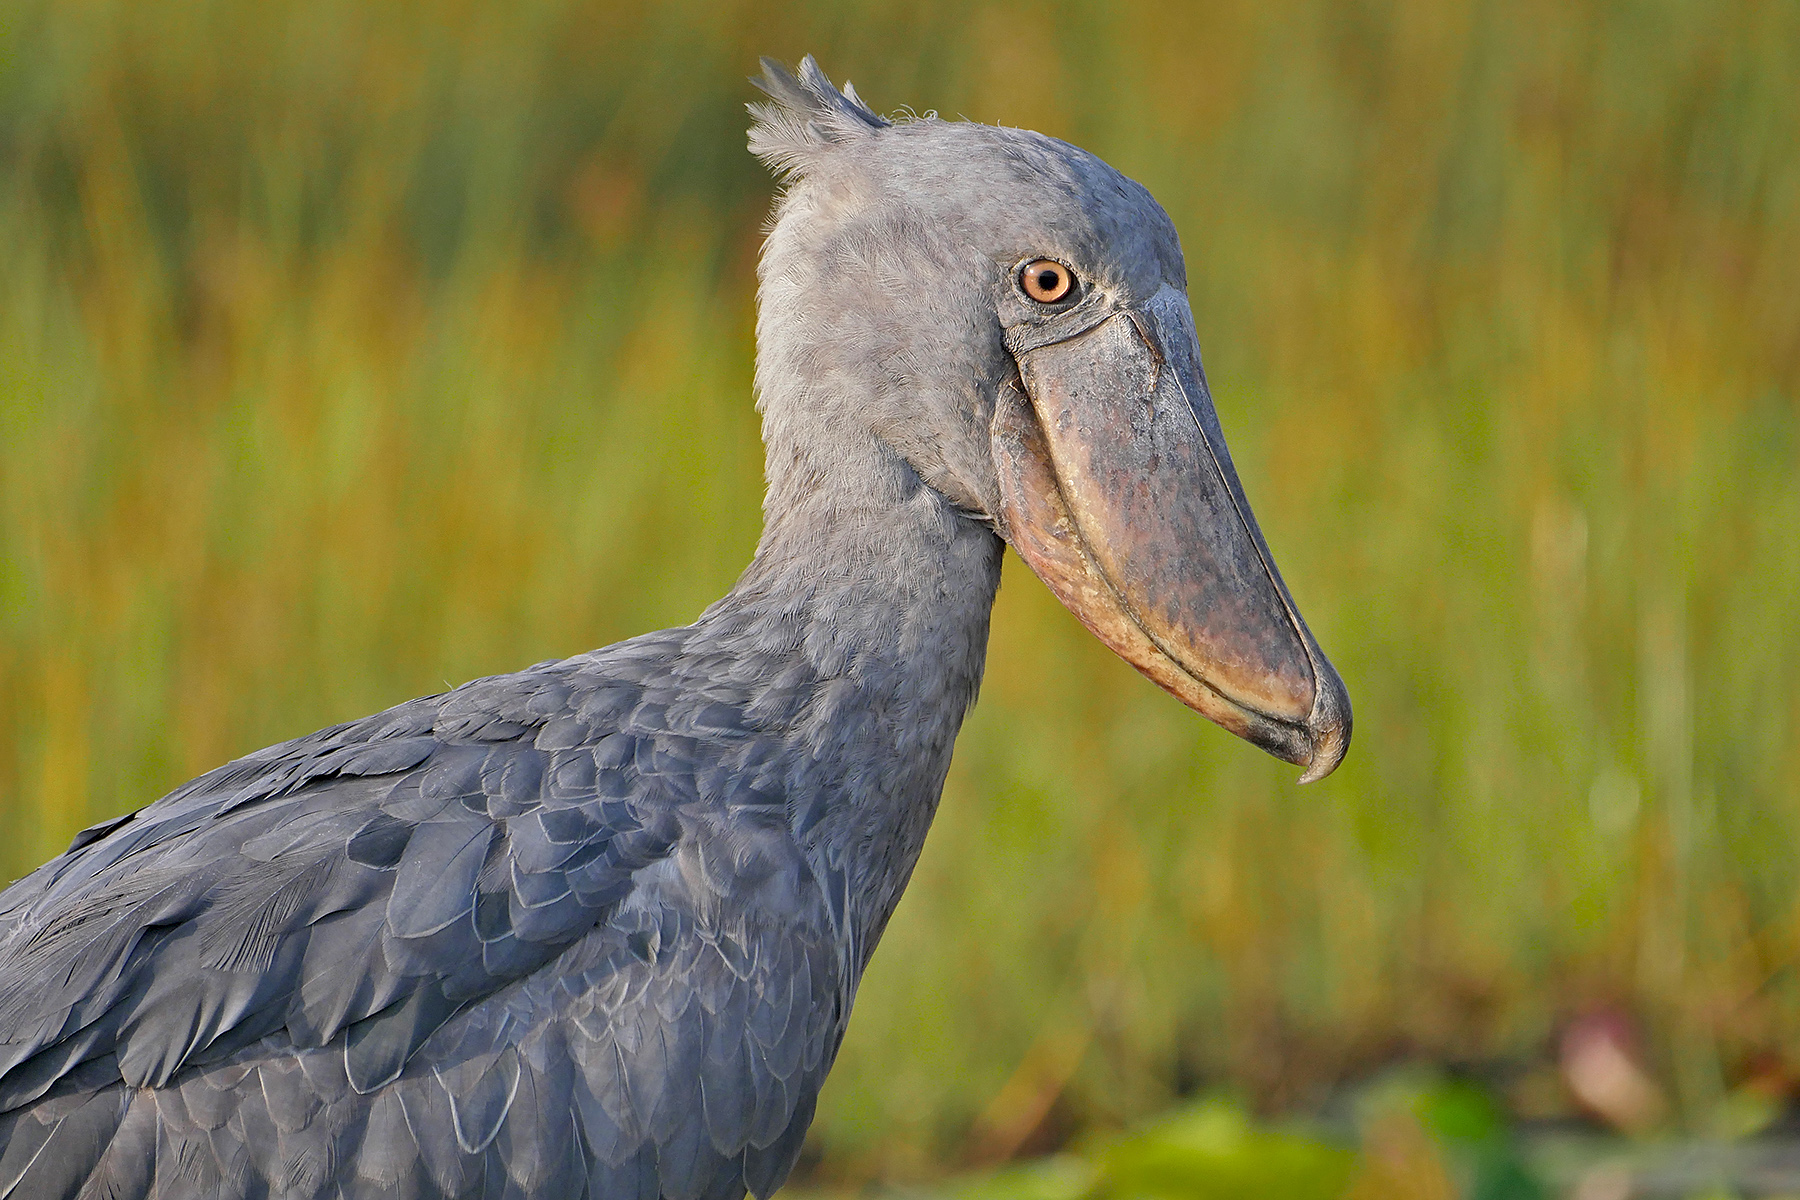 Shoebill on our Uganda birding tour (image by Nik Borrow)